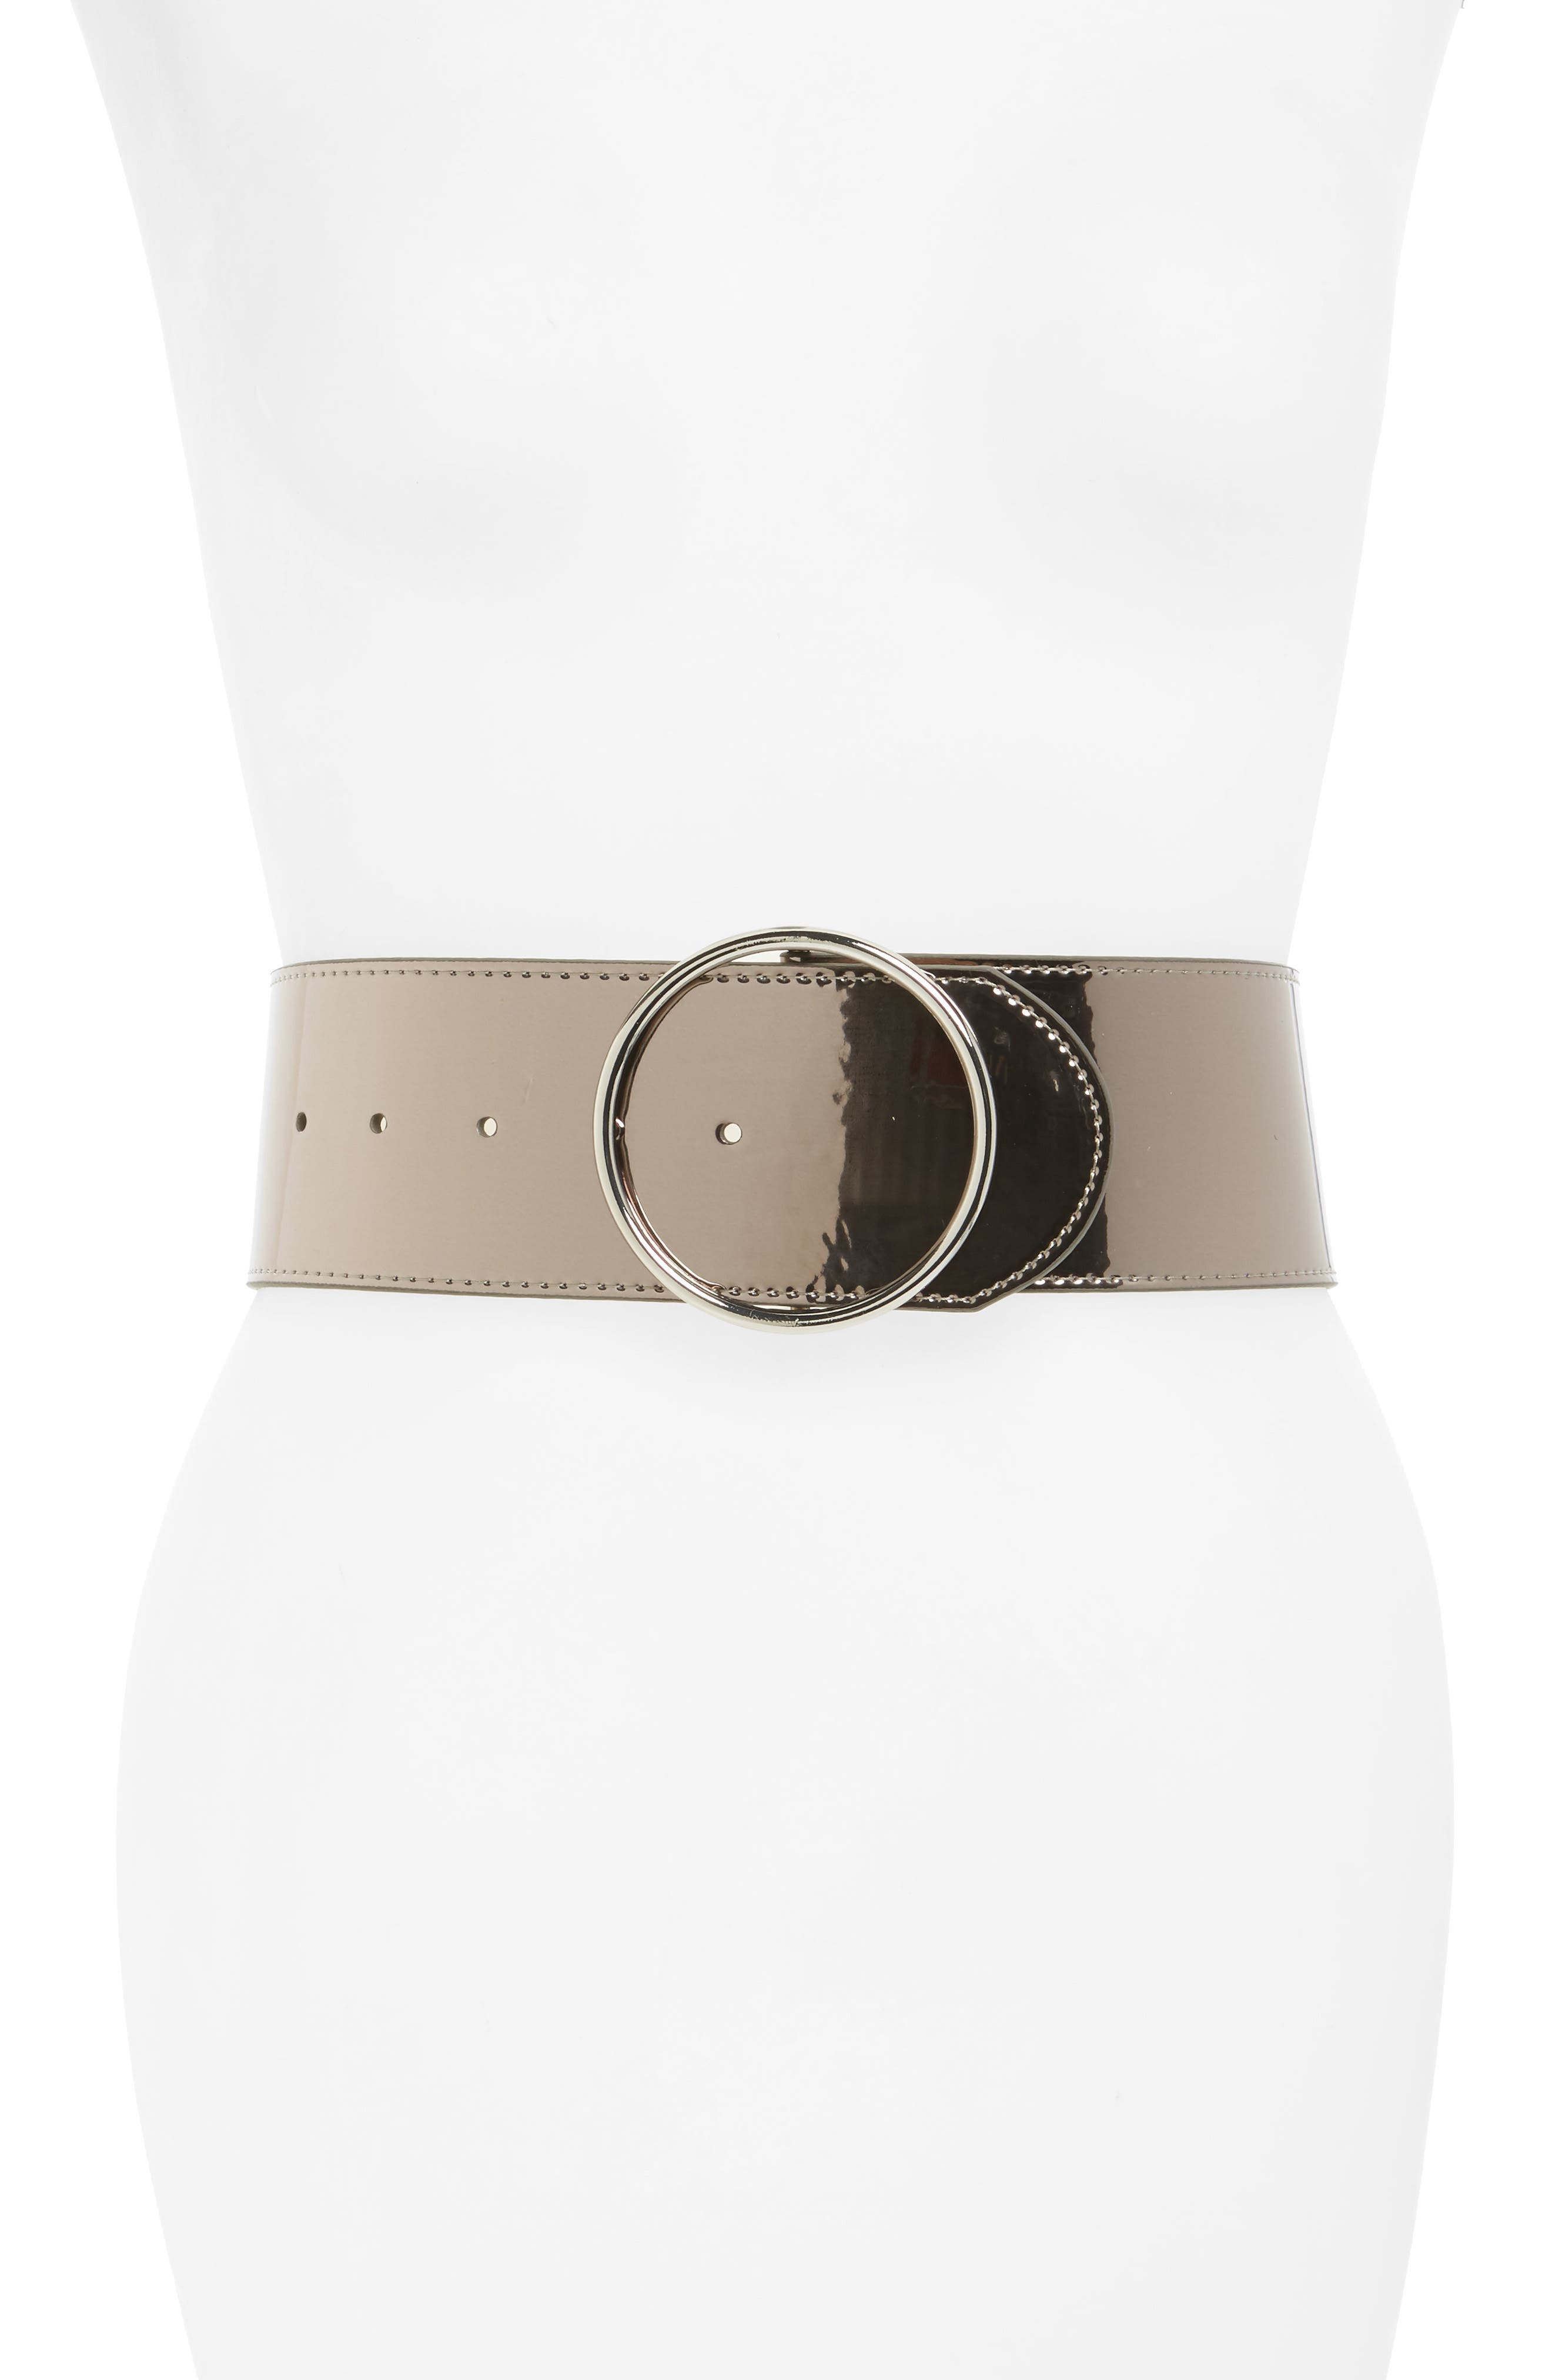 Alternate Image 1 Selected - Lodis High Waist Stretch Belt